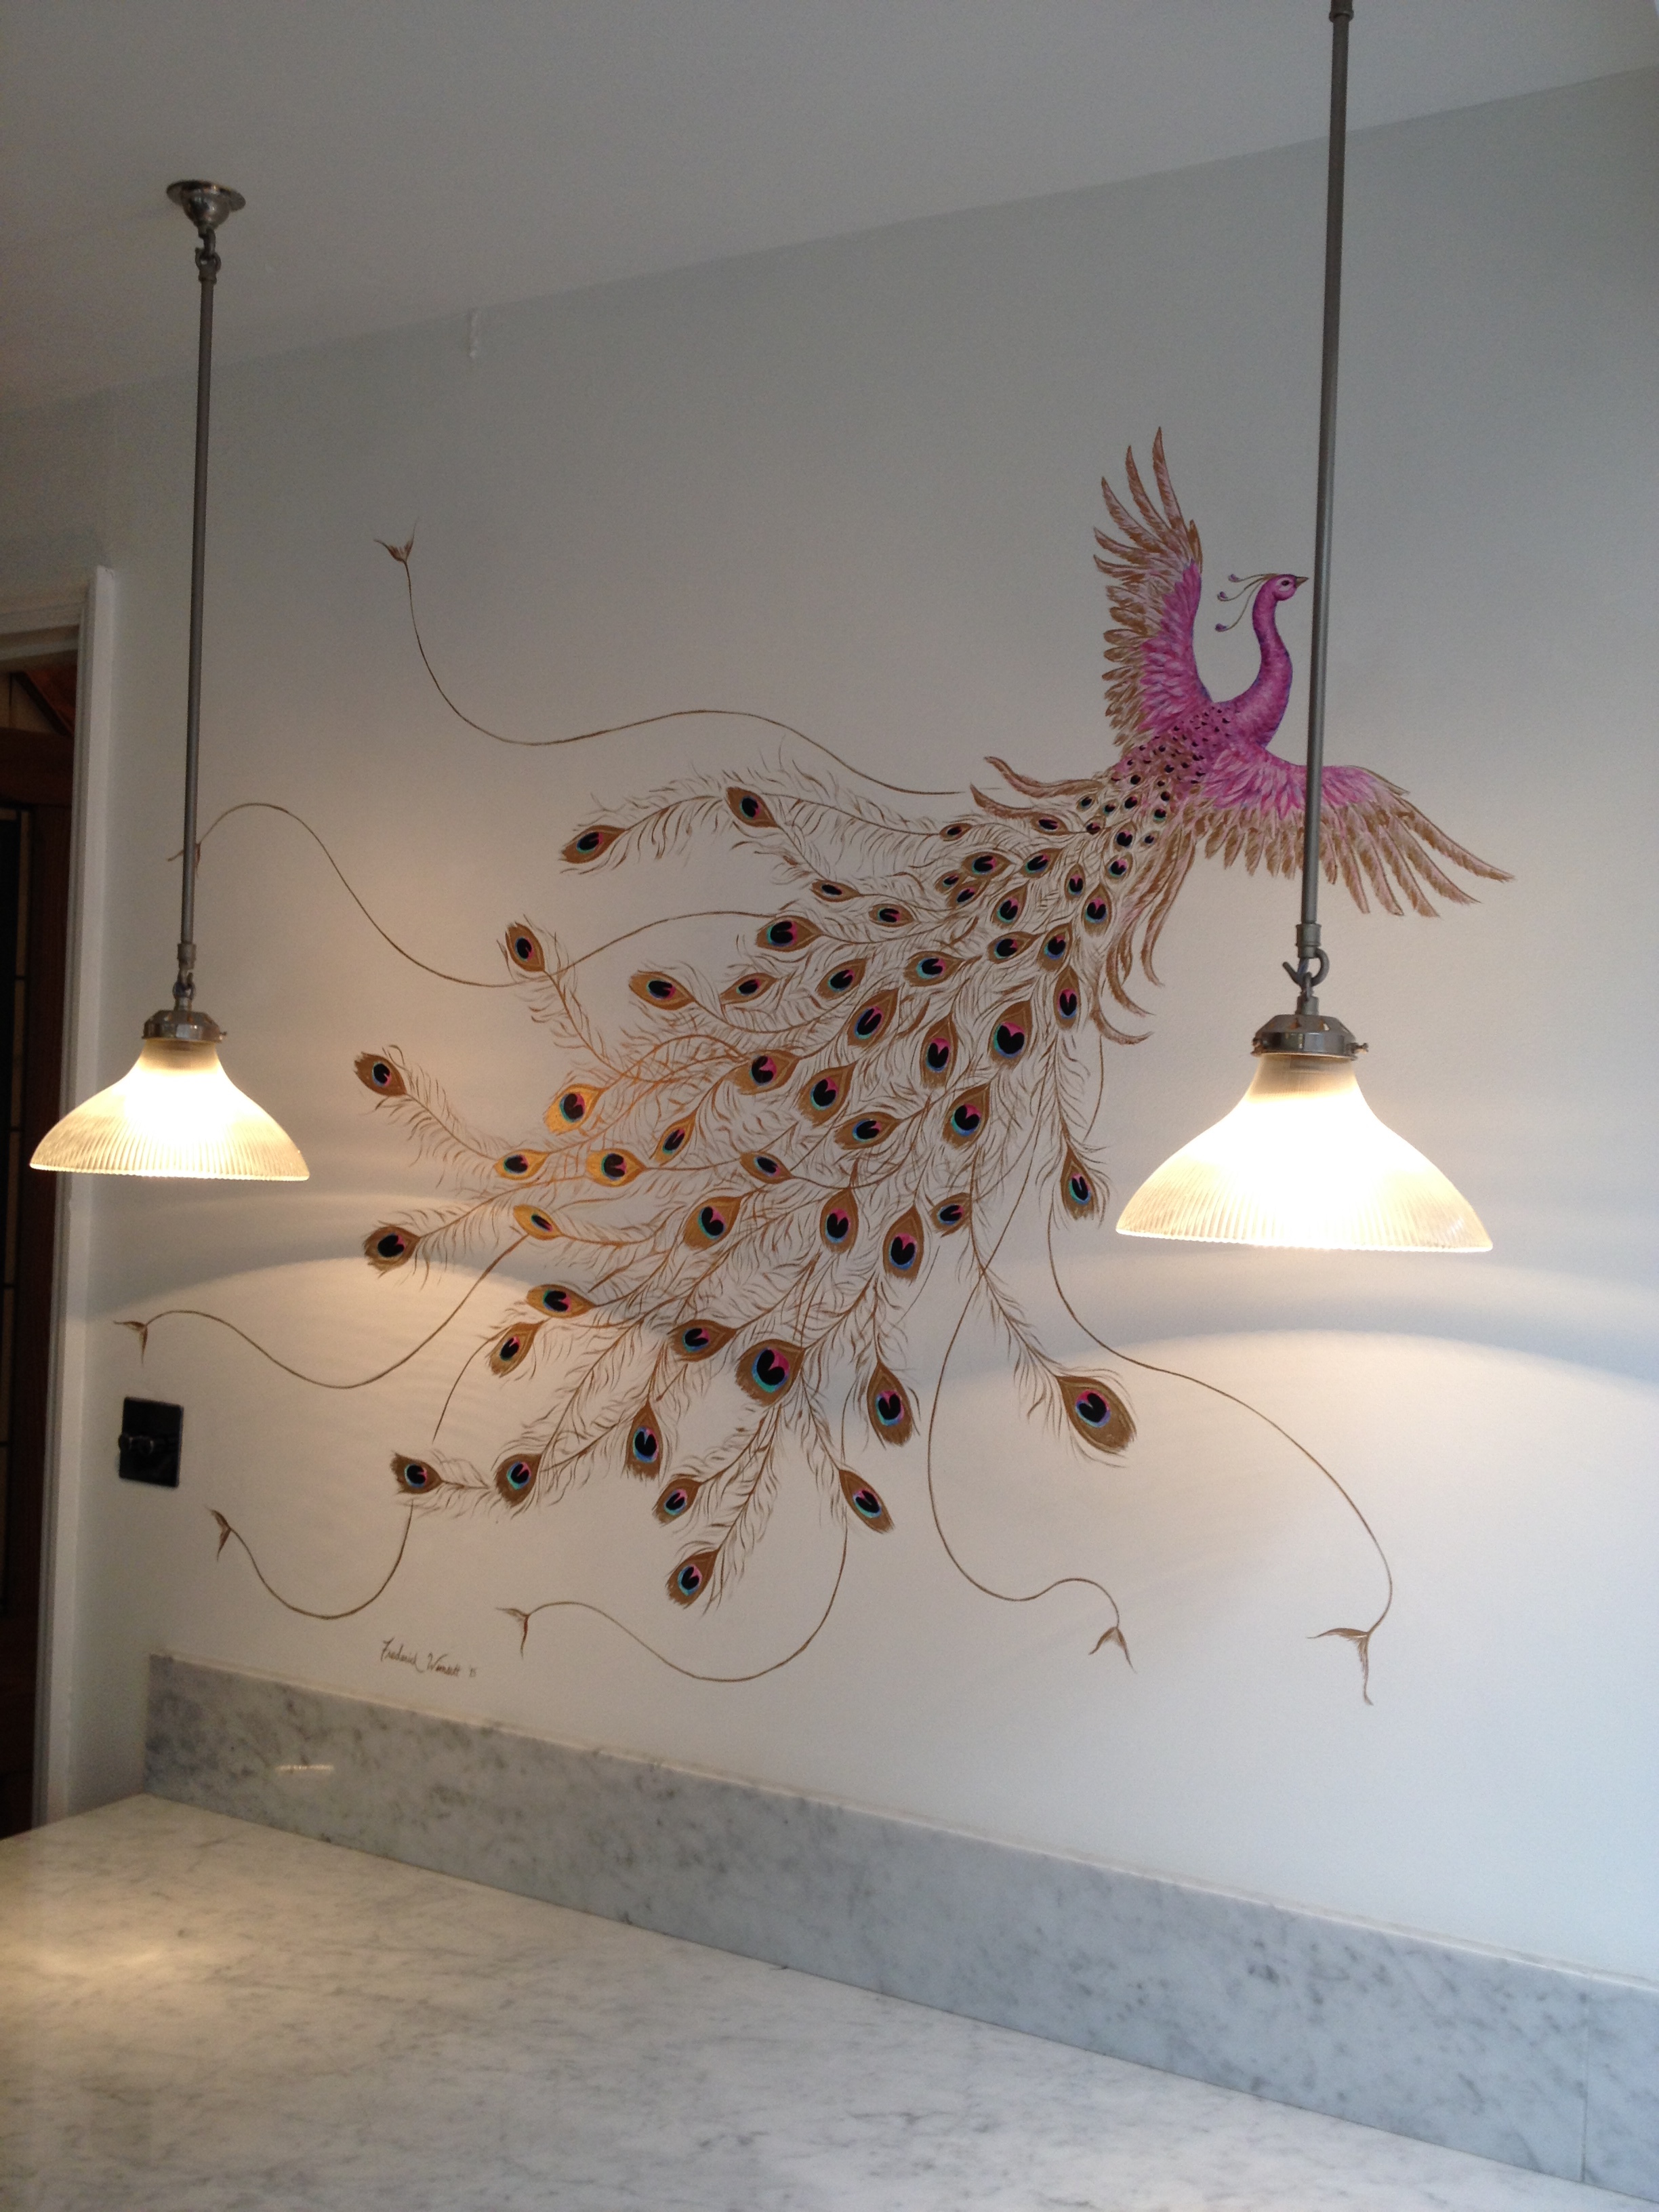 Peacock Kitchen 4 - Frederick Wimsett - murals and artistic design - other projects  .JPG